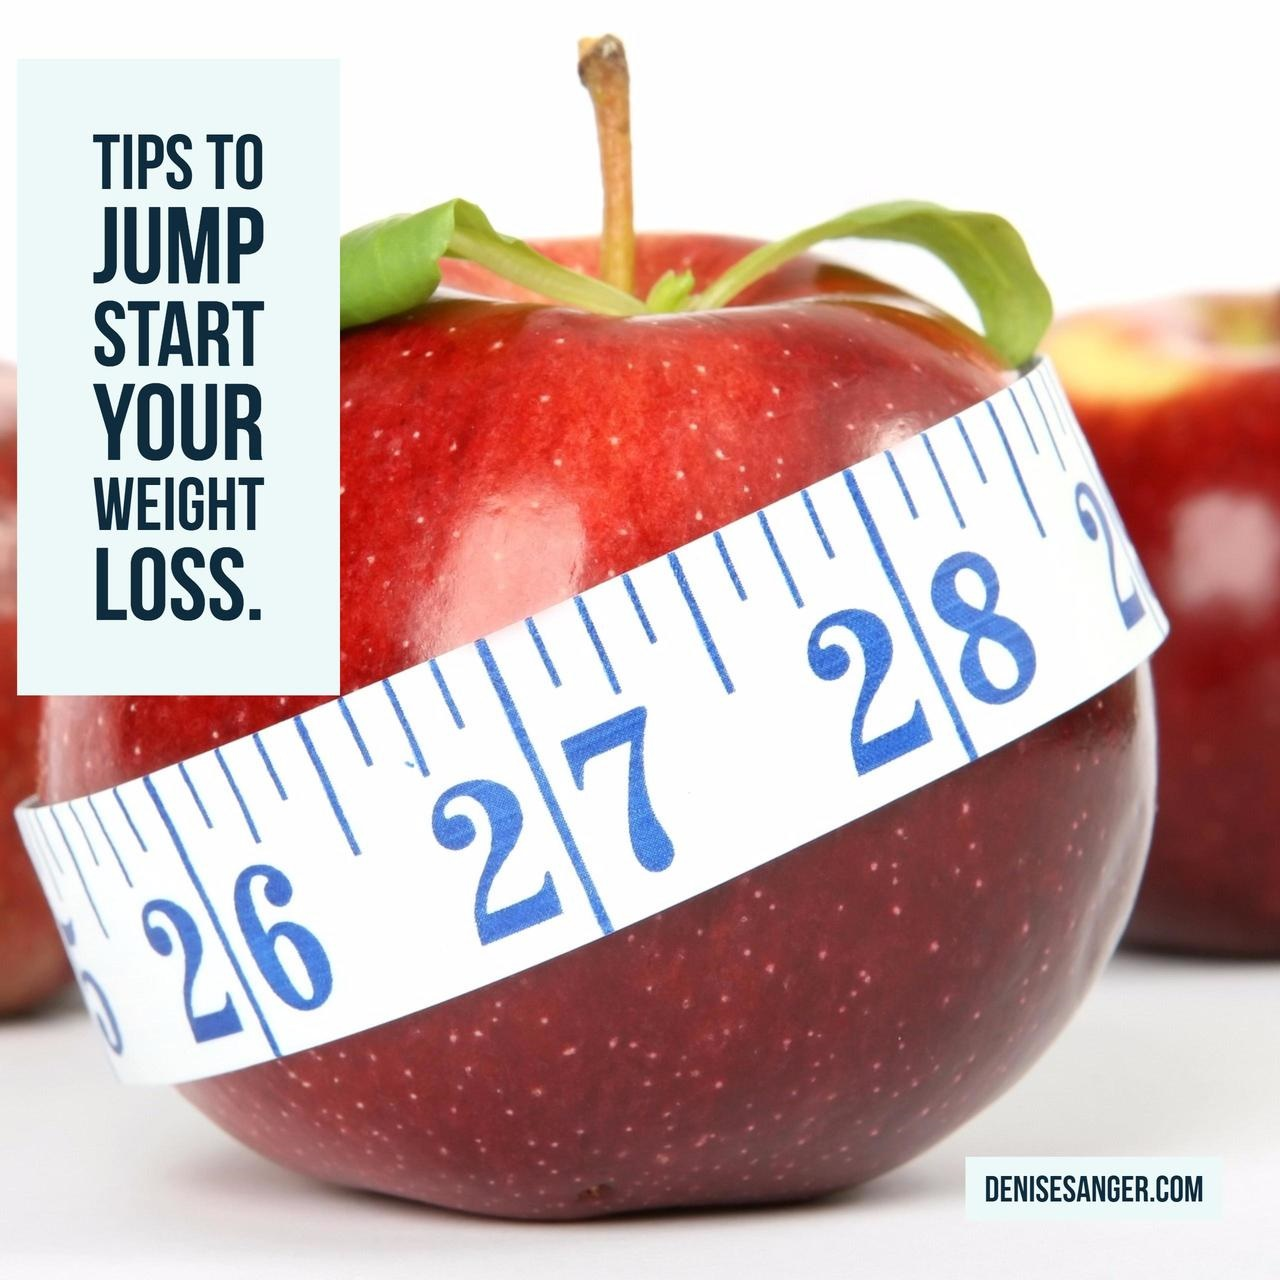 Tips To Jump Start Your Weight Loss